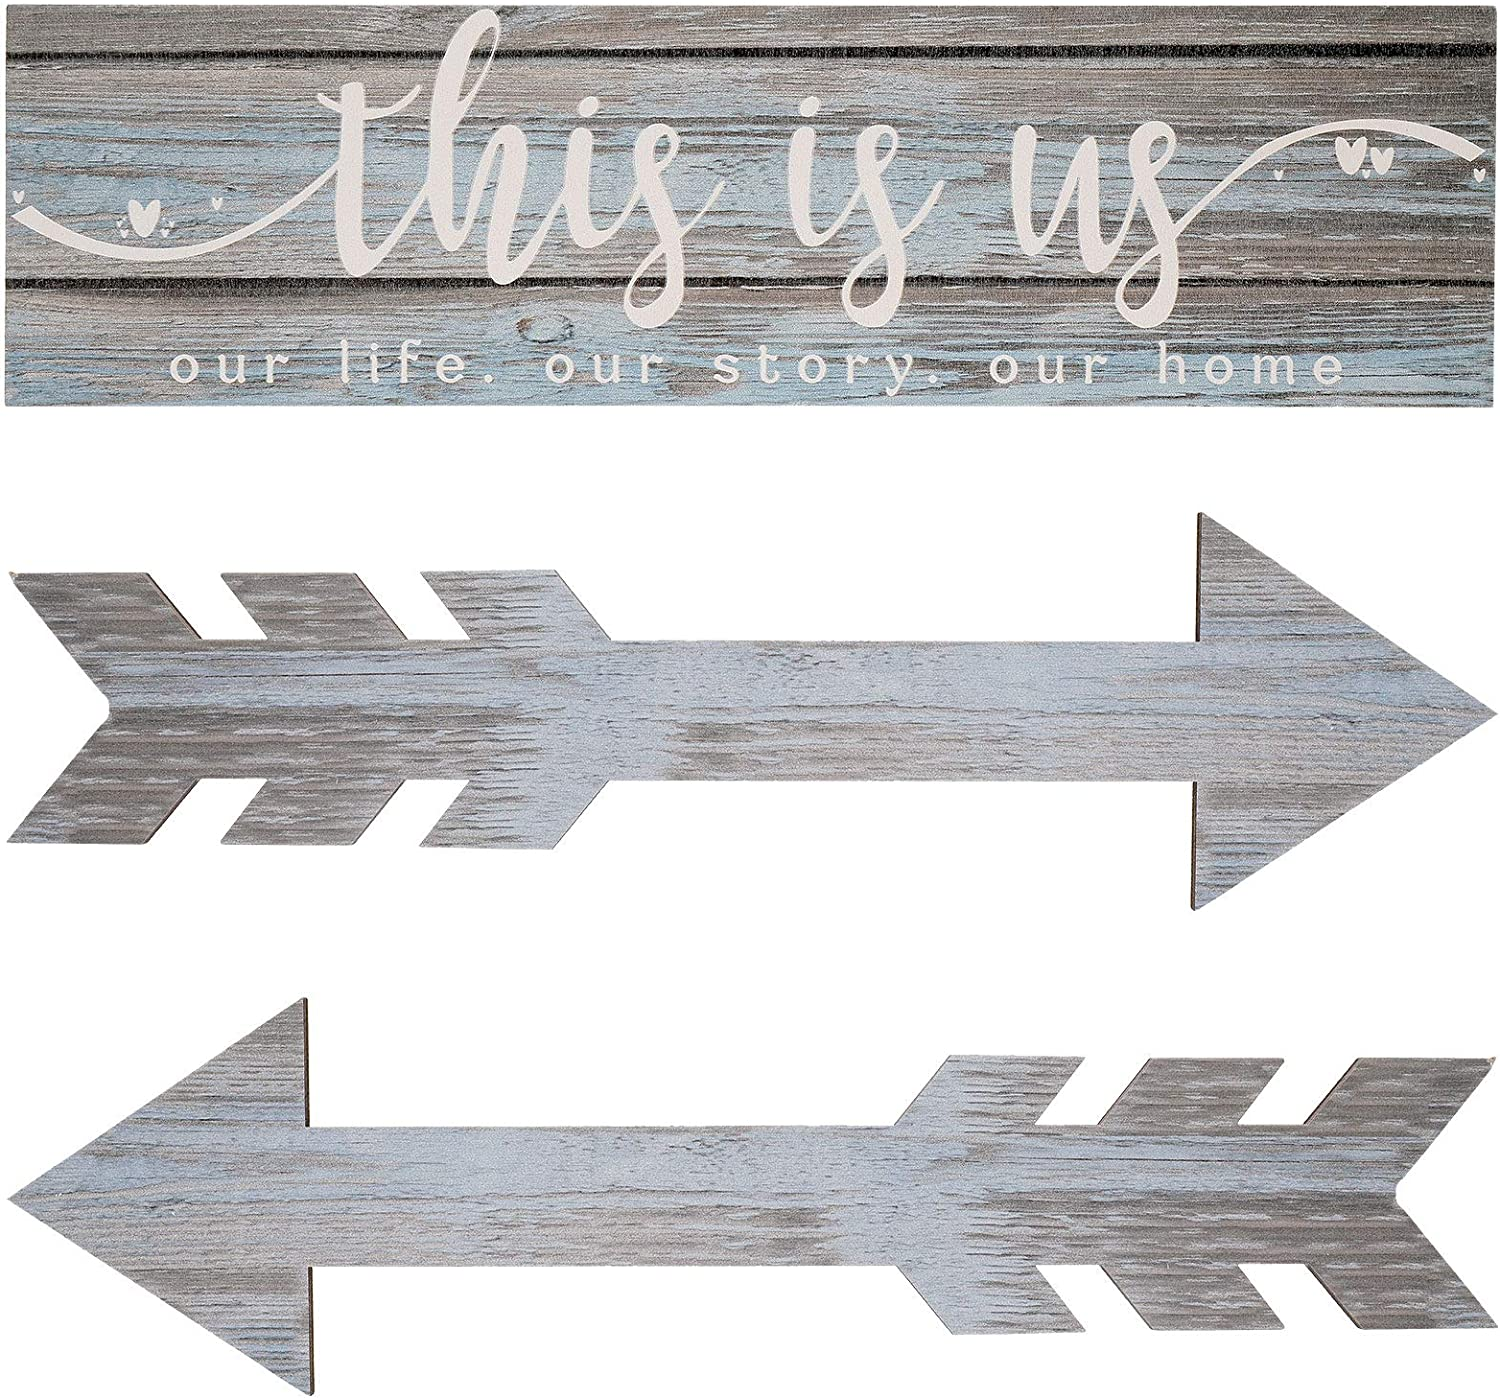 3 Pieces This is Us Wall Decor Rustic Wood Signs Family Quotes Wall Sign Home Decor Wooden Arrow Hanging Signs Wood Grain Background Wall Decor for Home Bedroom Living Room, 15 x 4 x 0.2 Inch (Blue)